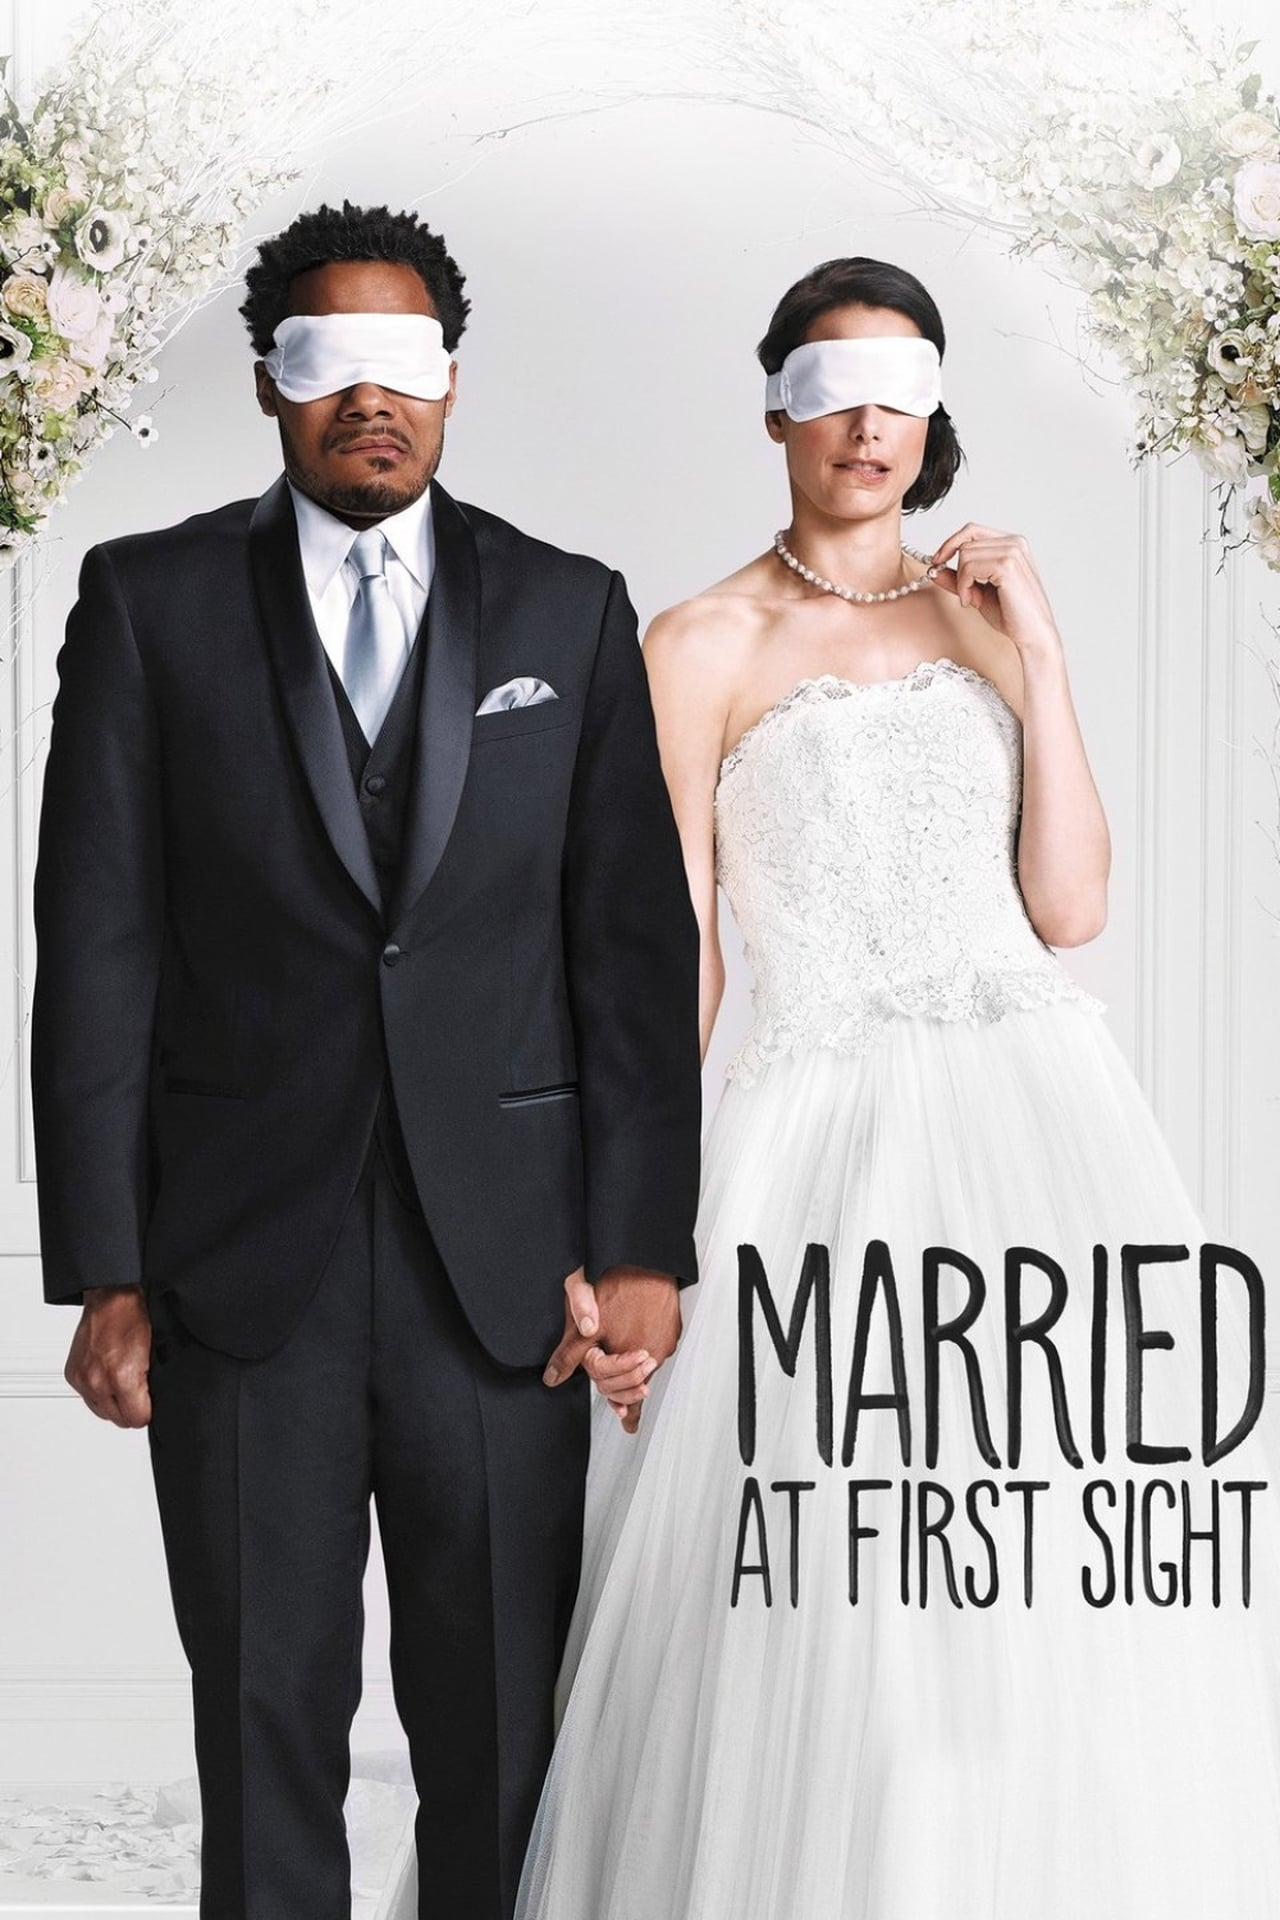 Putlocker Married At First Sight Season 4 (2016)